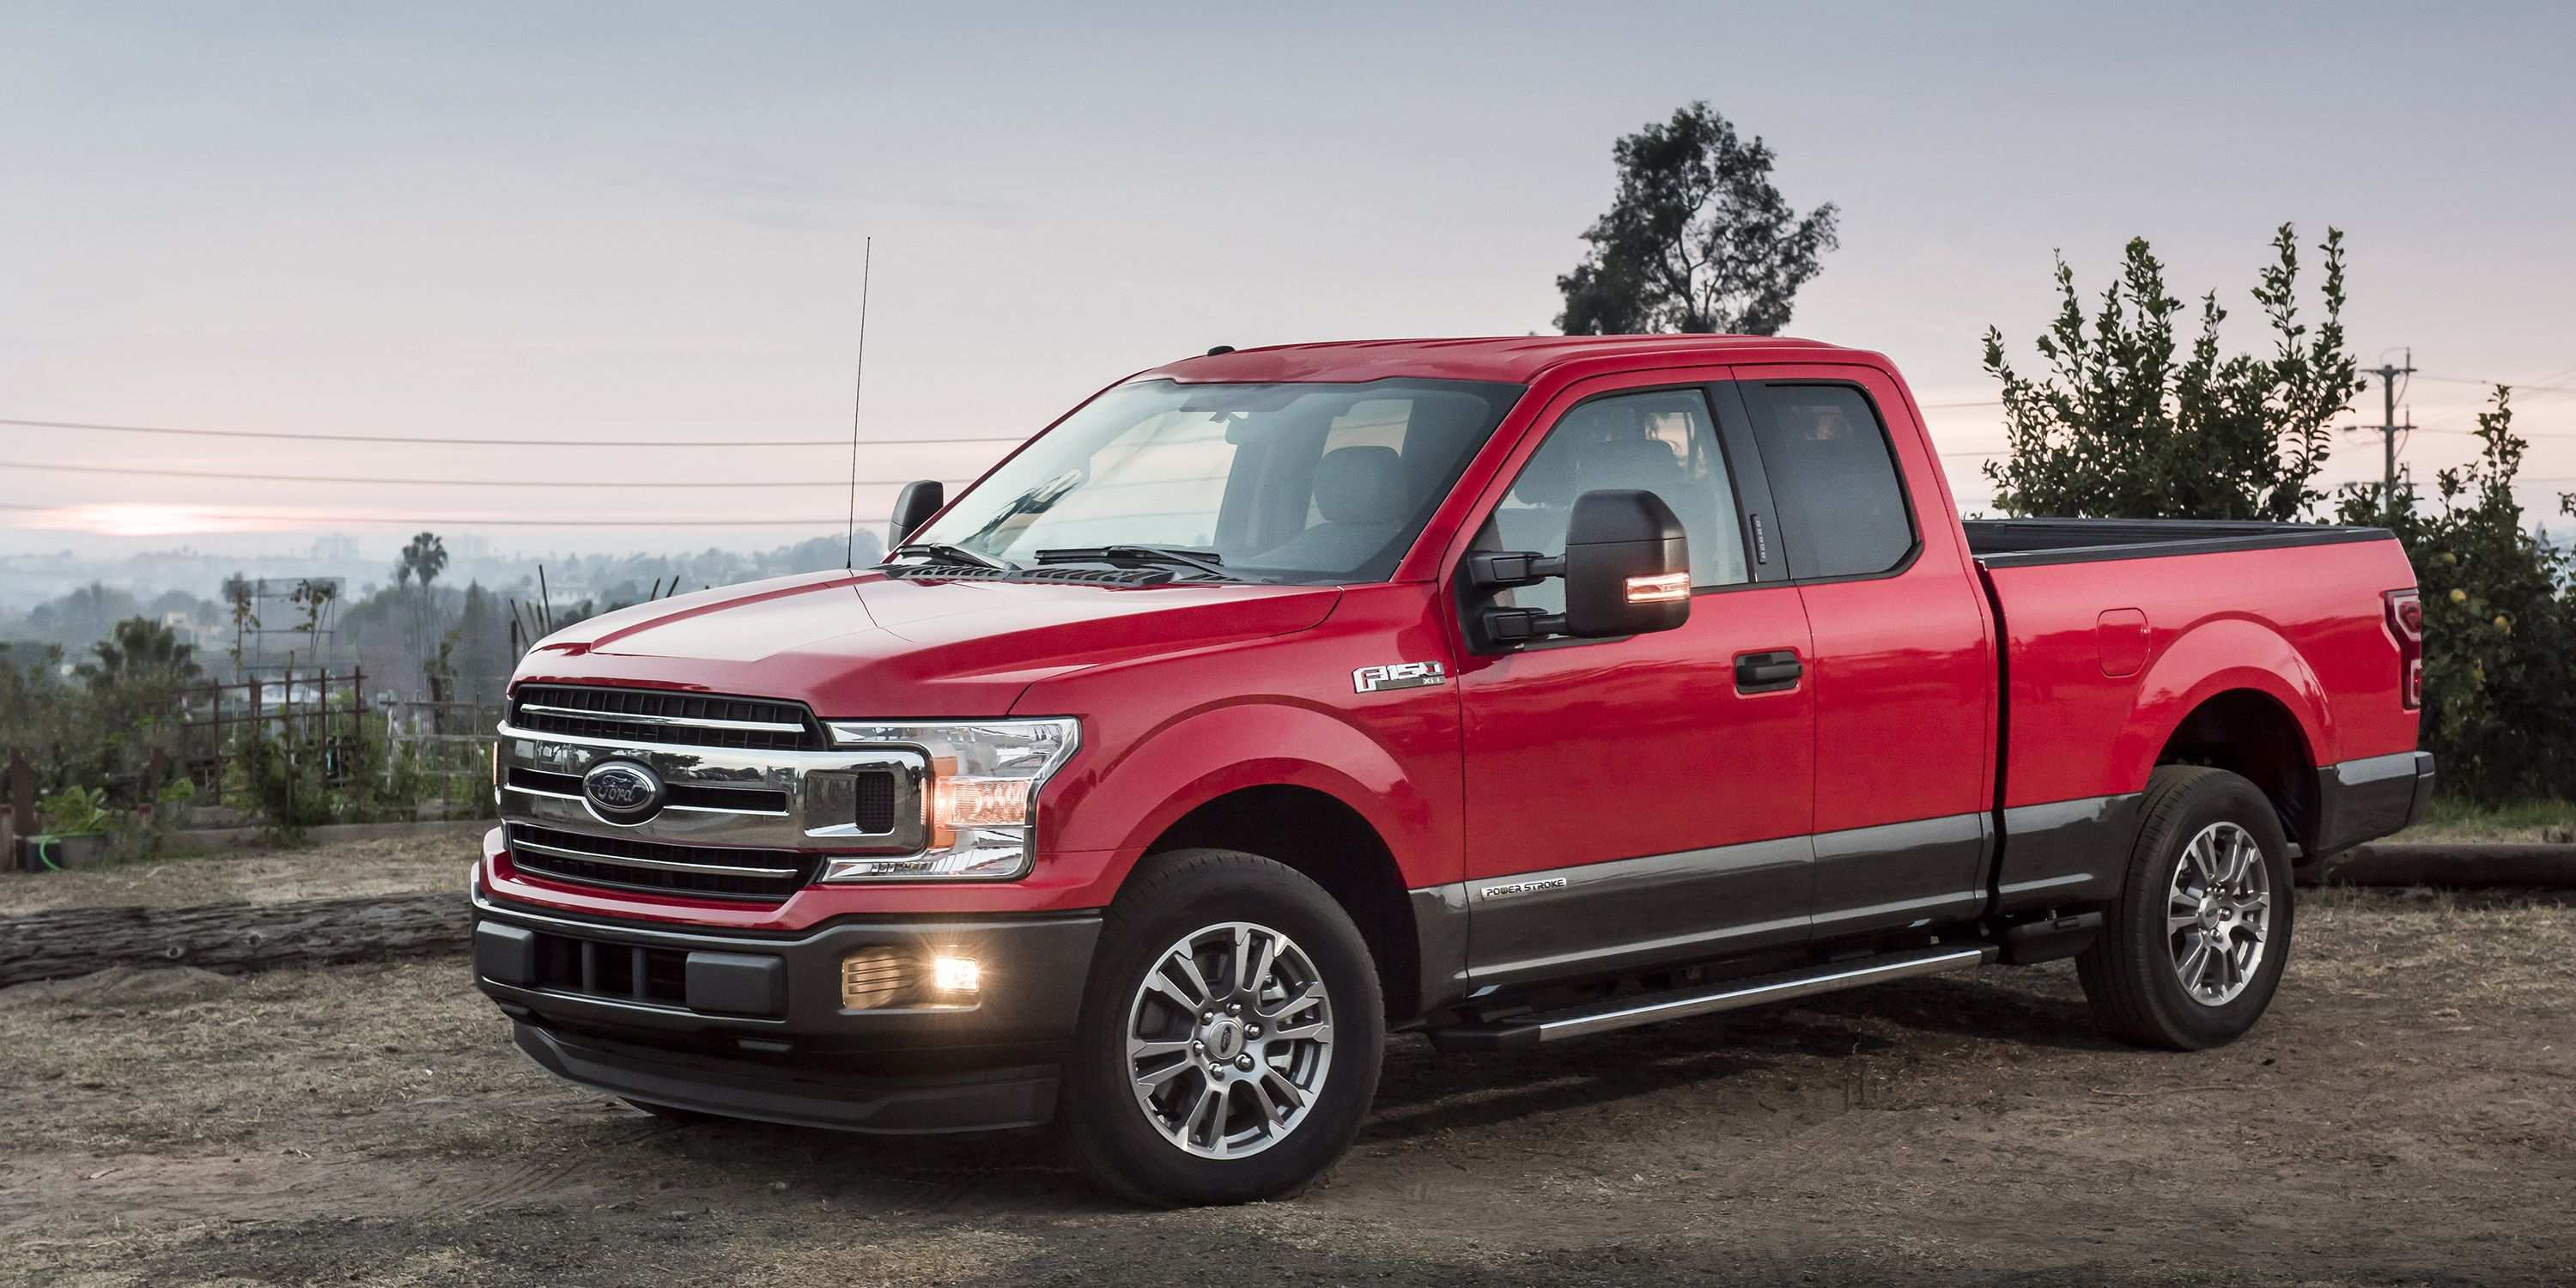 29 New 2019 Ford Half Ton Diesel Prices for 2019 Ford Half Ton Diesel